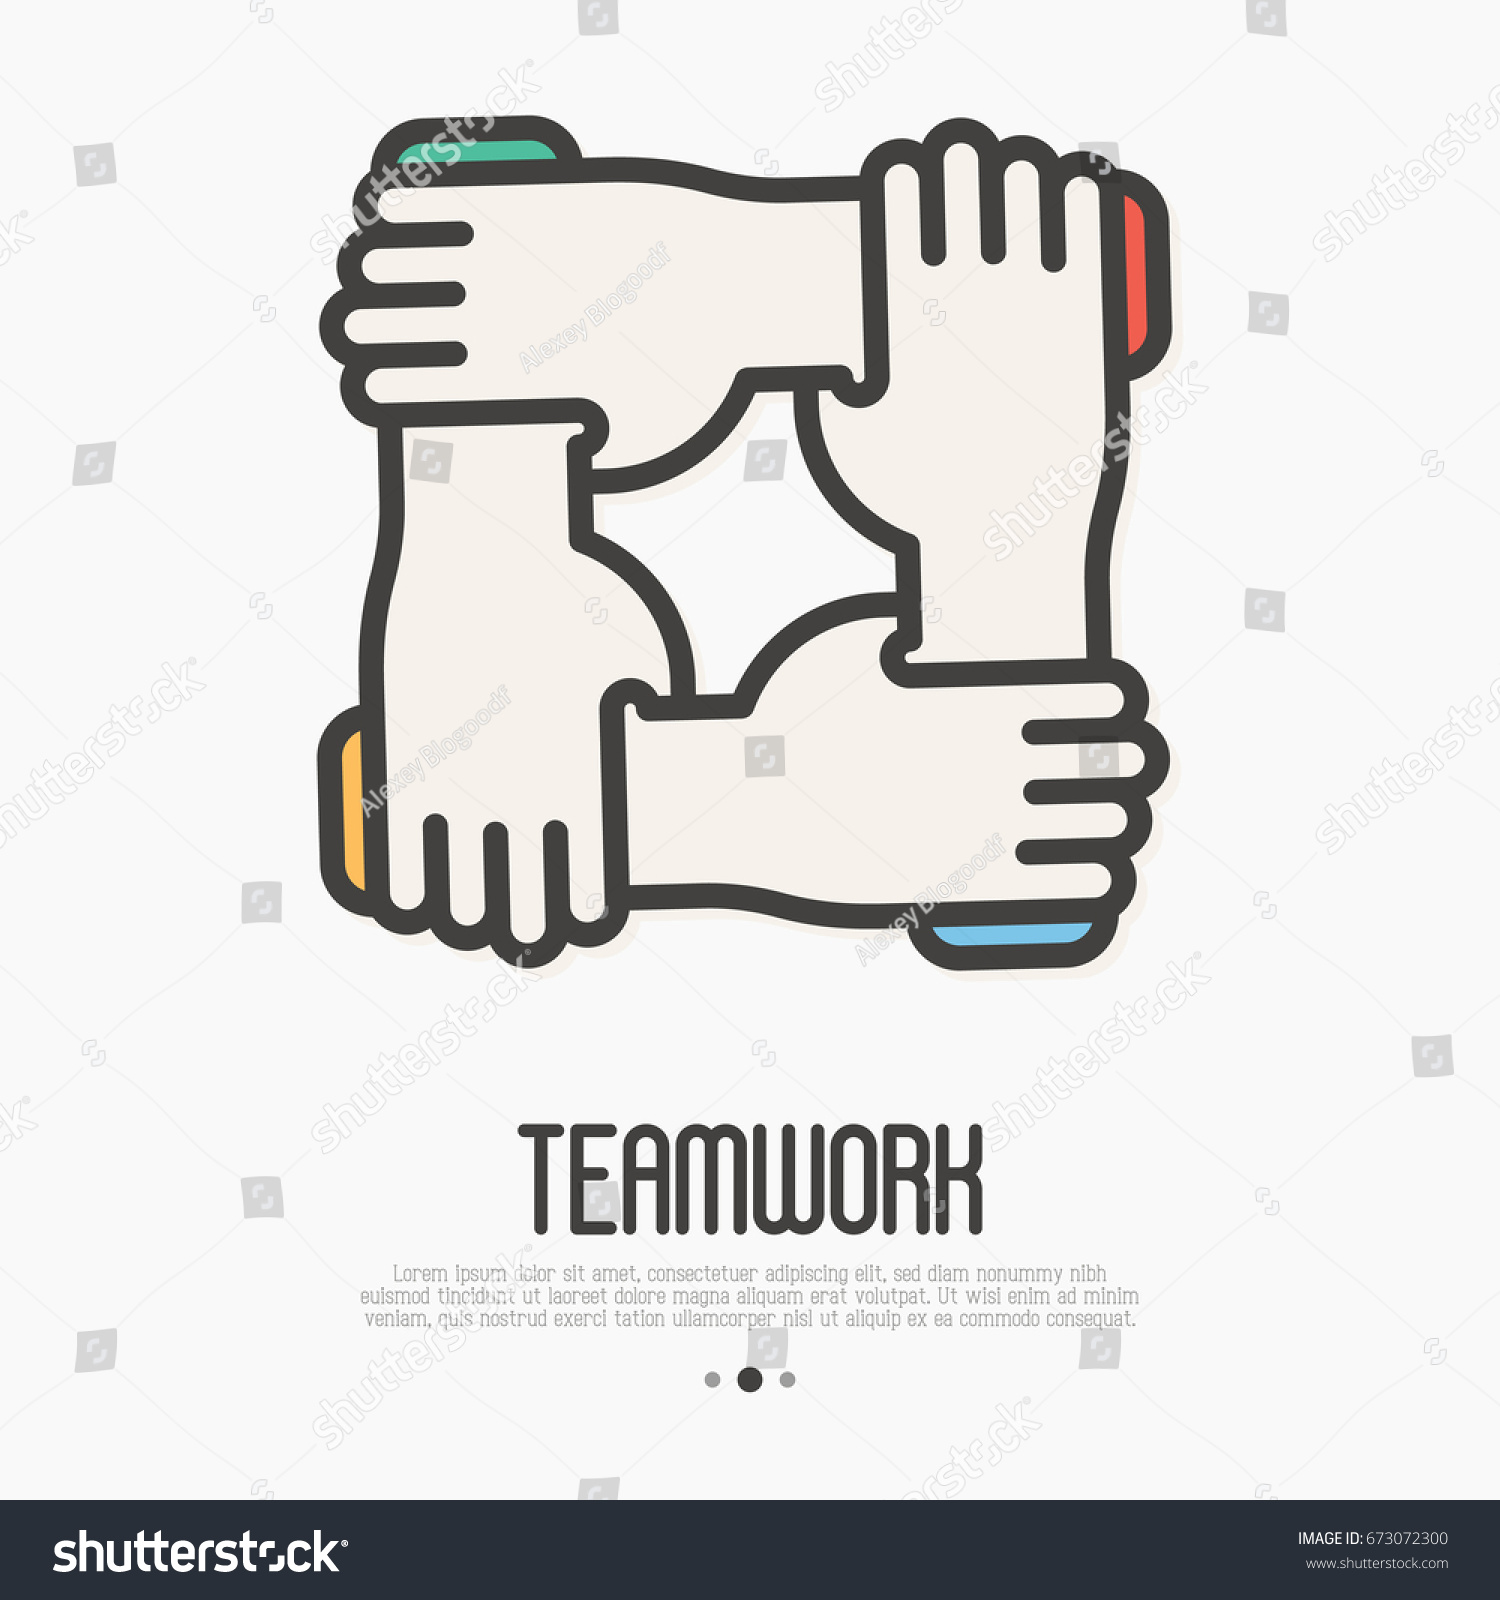 Four hands hold together wrist other stock vector 673072300 four hands hold together for the wrist other symbol of team work support buycottarizona